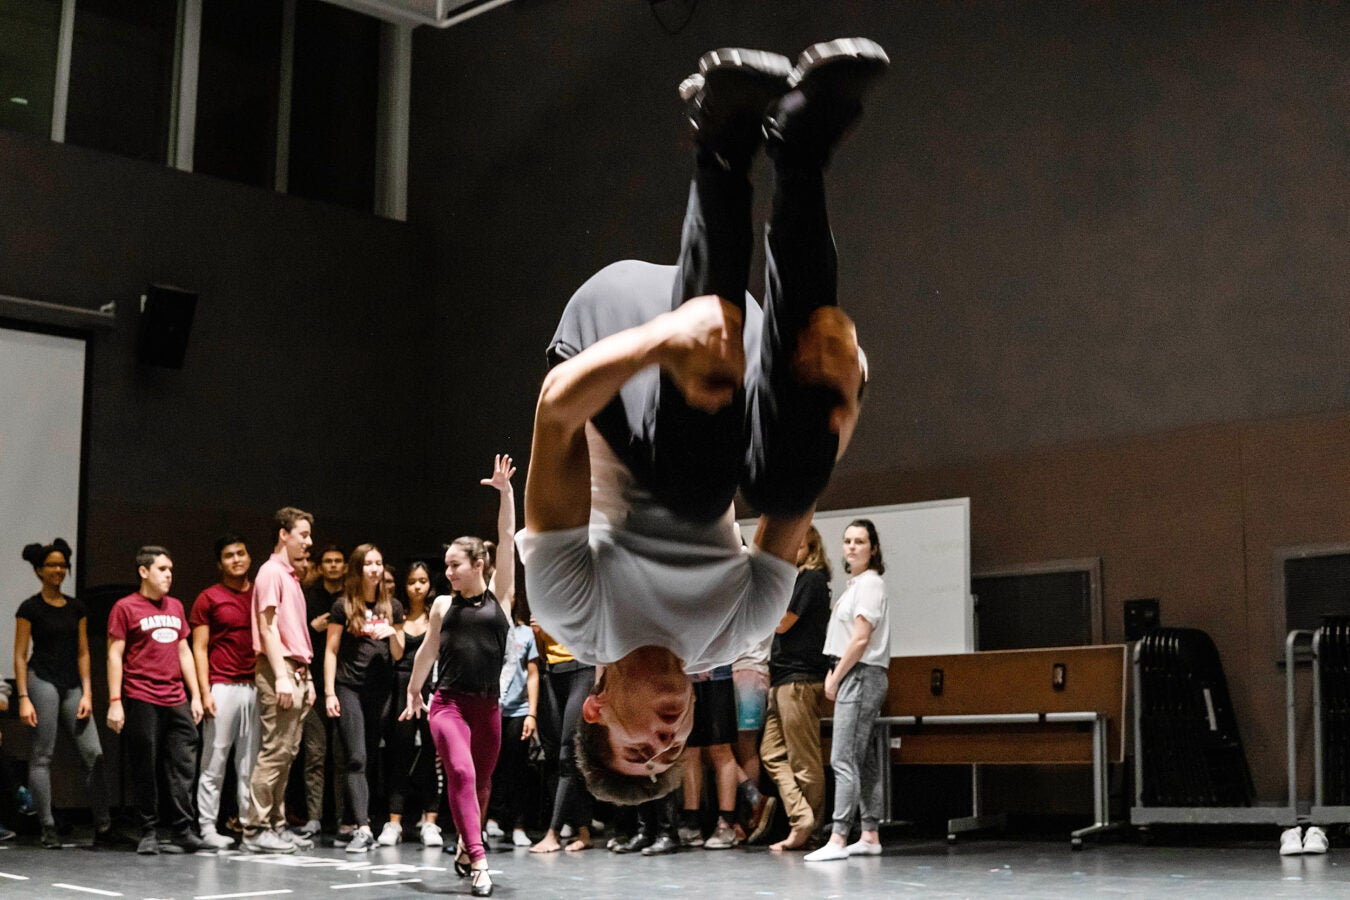 Performer does a backflip